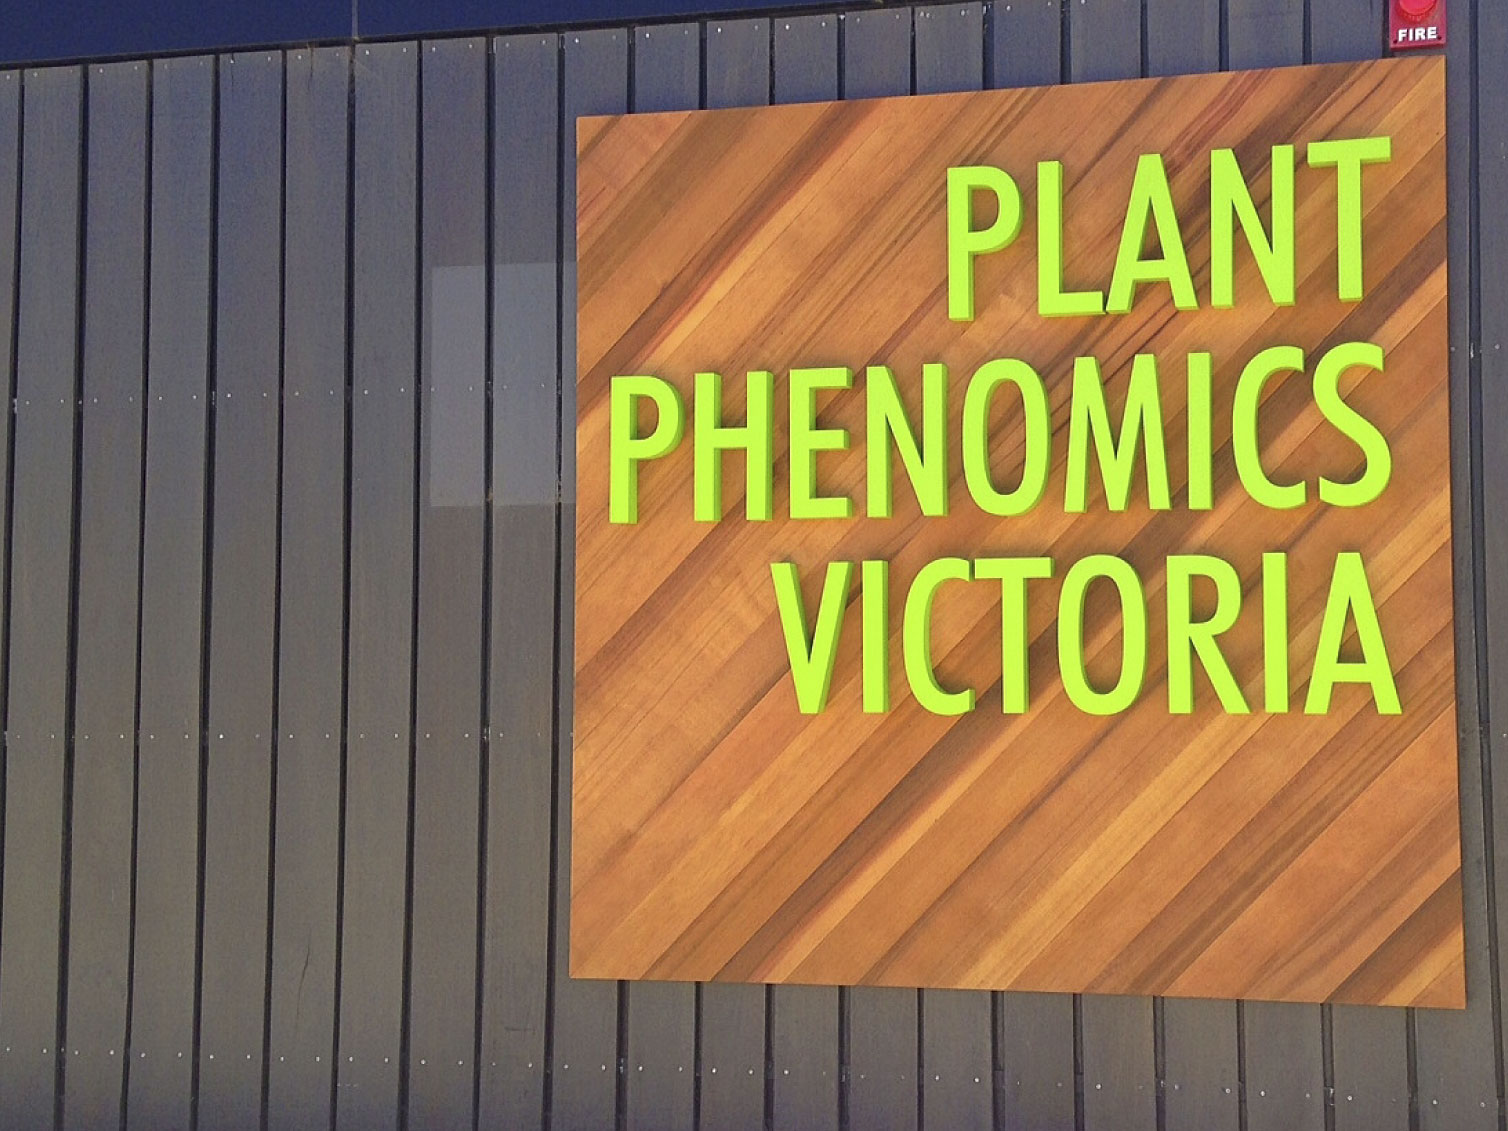 plant-phemonics-victoria-fabricated-letters-onto-timber-backing